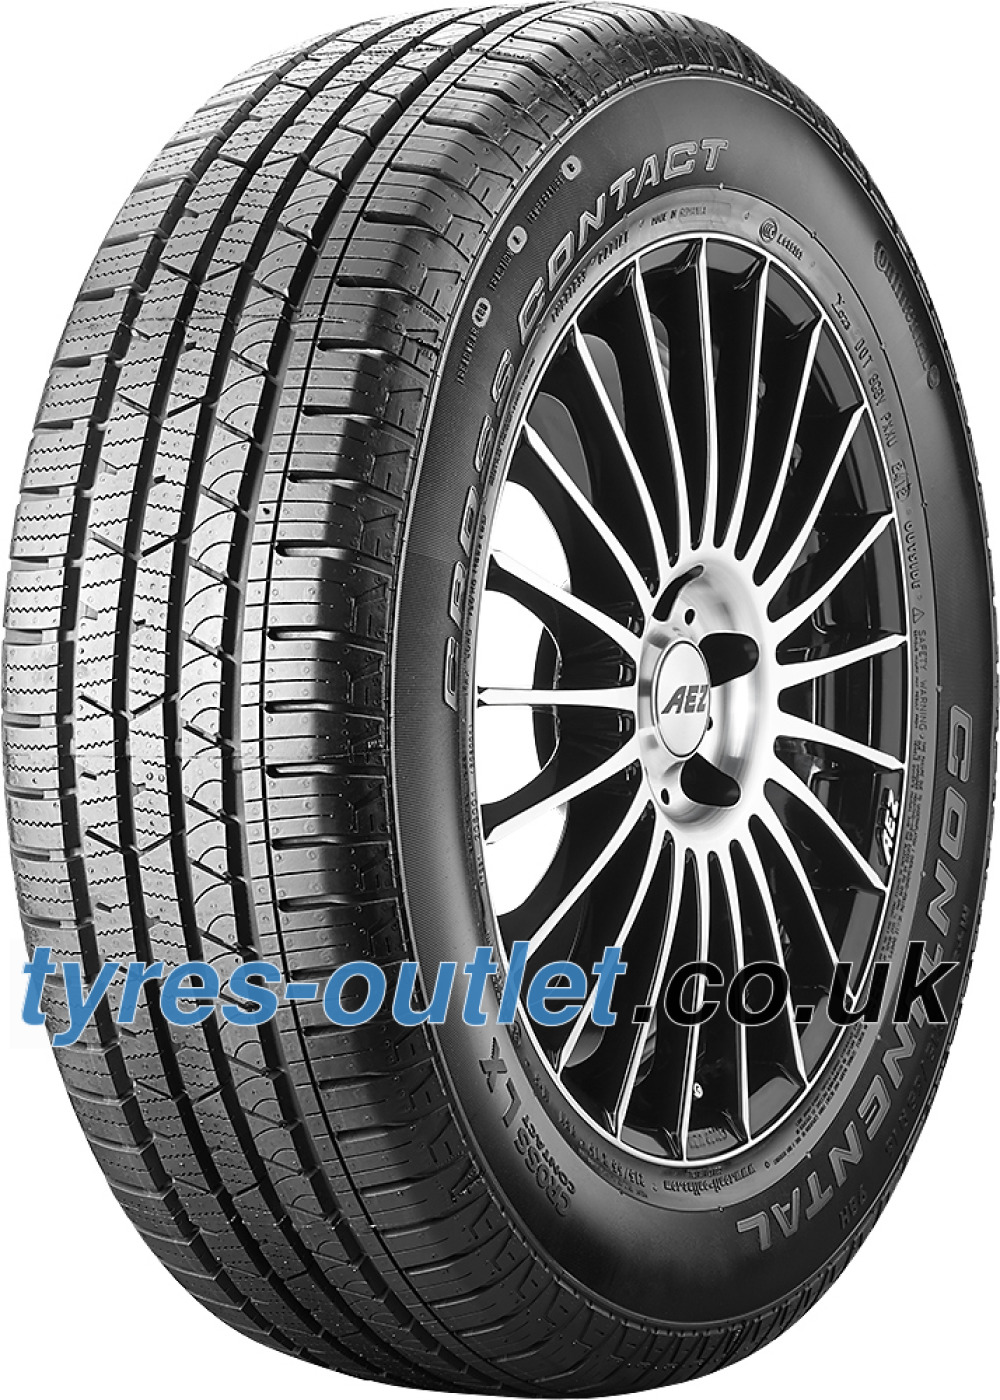 Continental ContiCrossContact LX ( 275/40 R22 108Y XL ,with kerbing rib )